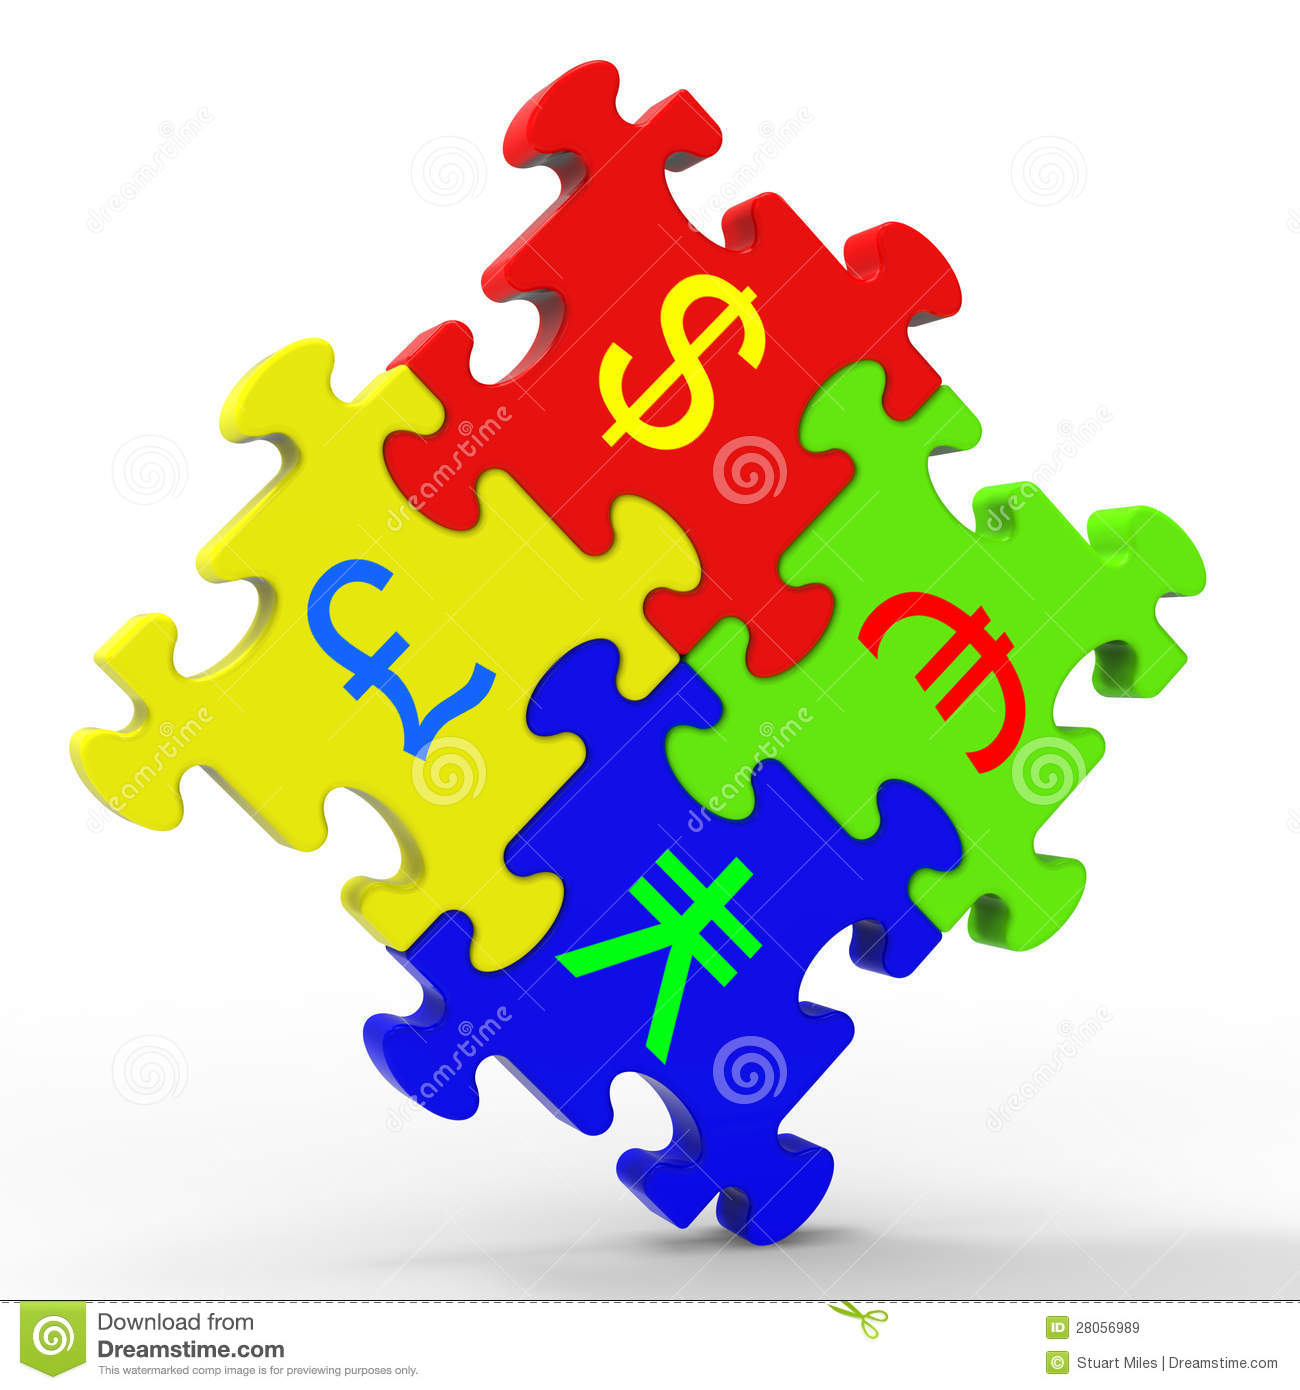 Currency Symbols Puzzle Shows Global Investment Stock Illustration